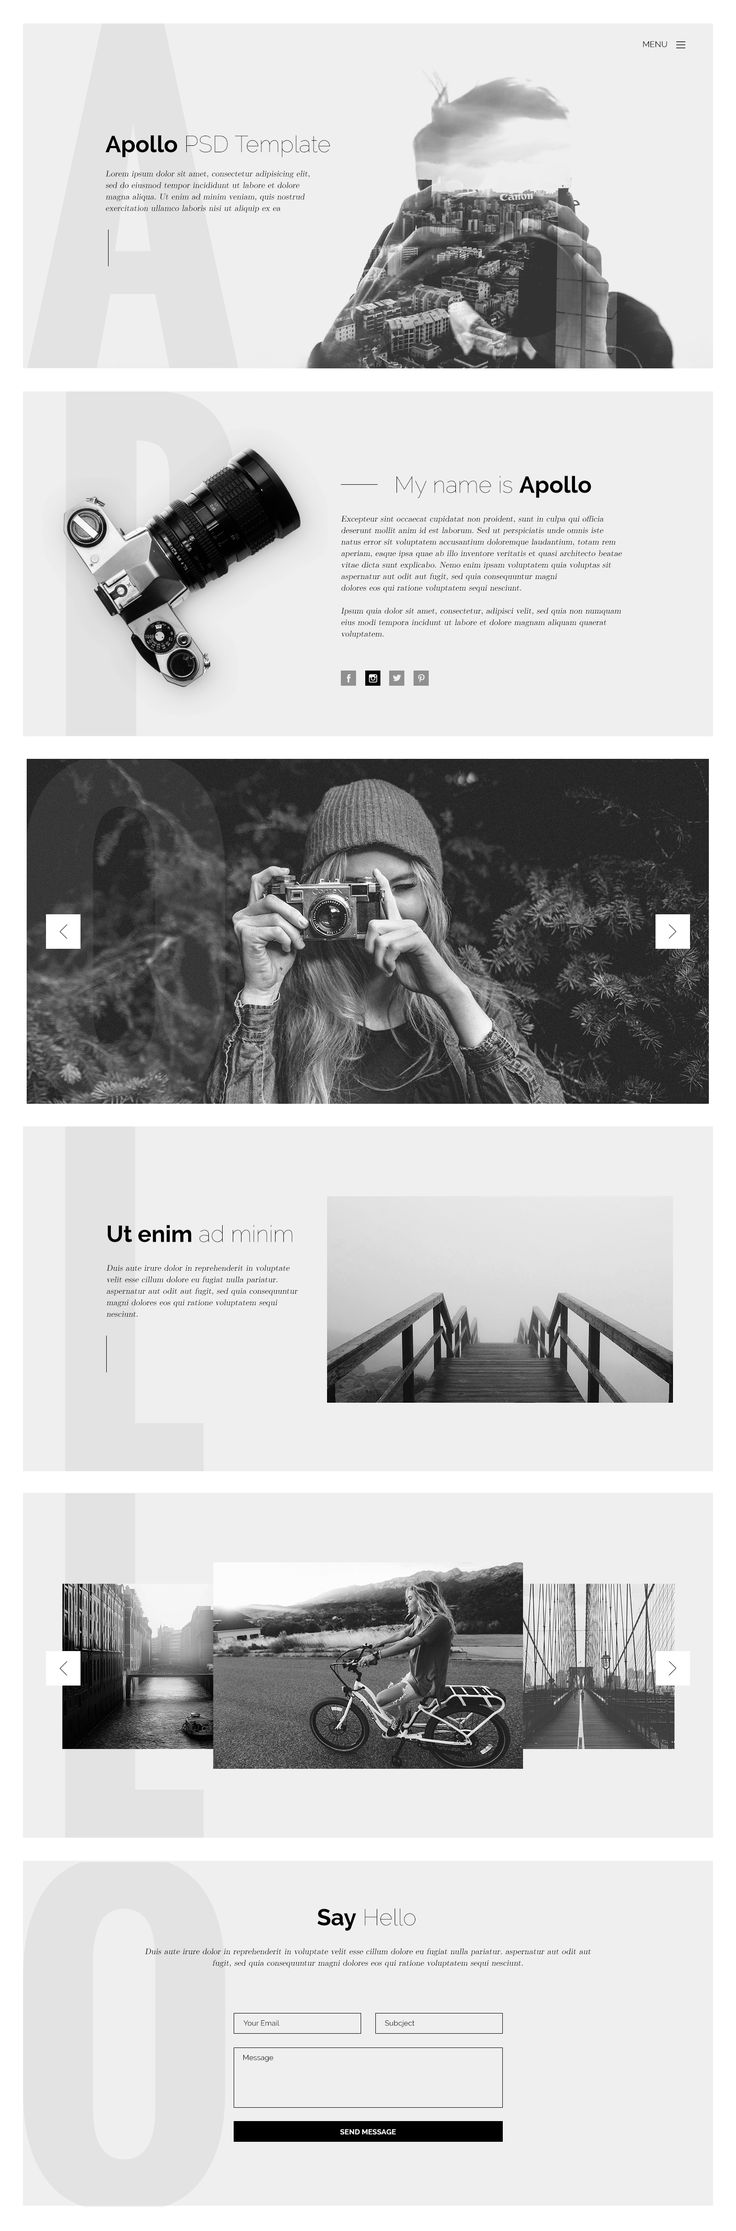 Apollo is a free PSD template that is specifically designed for professional photographers. This template is perfect for those who need an easy, attractive and effective way to share their work with clients.